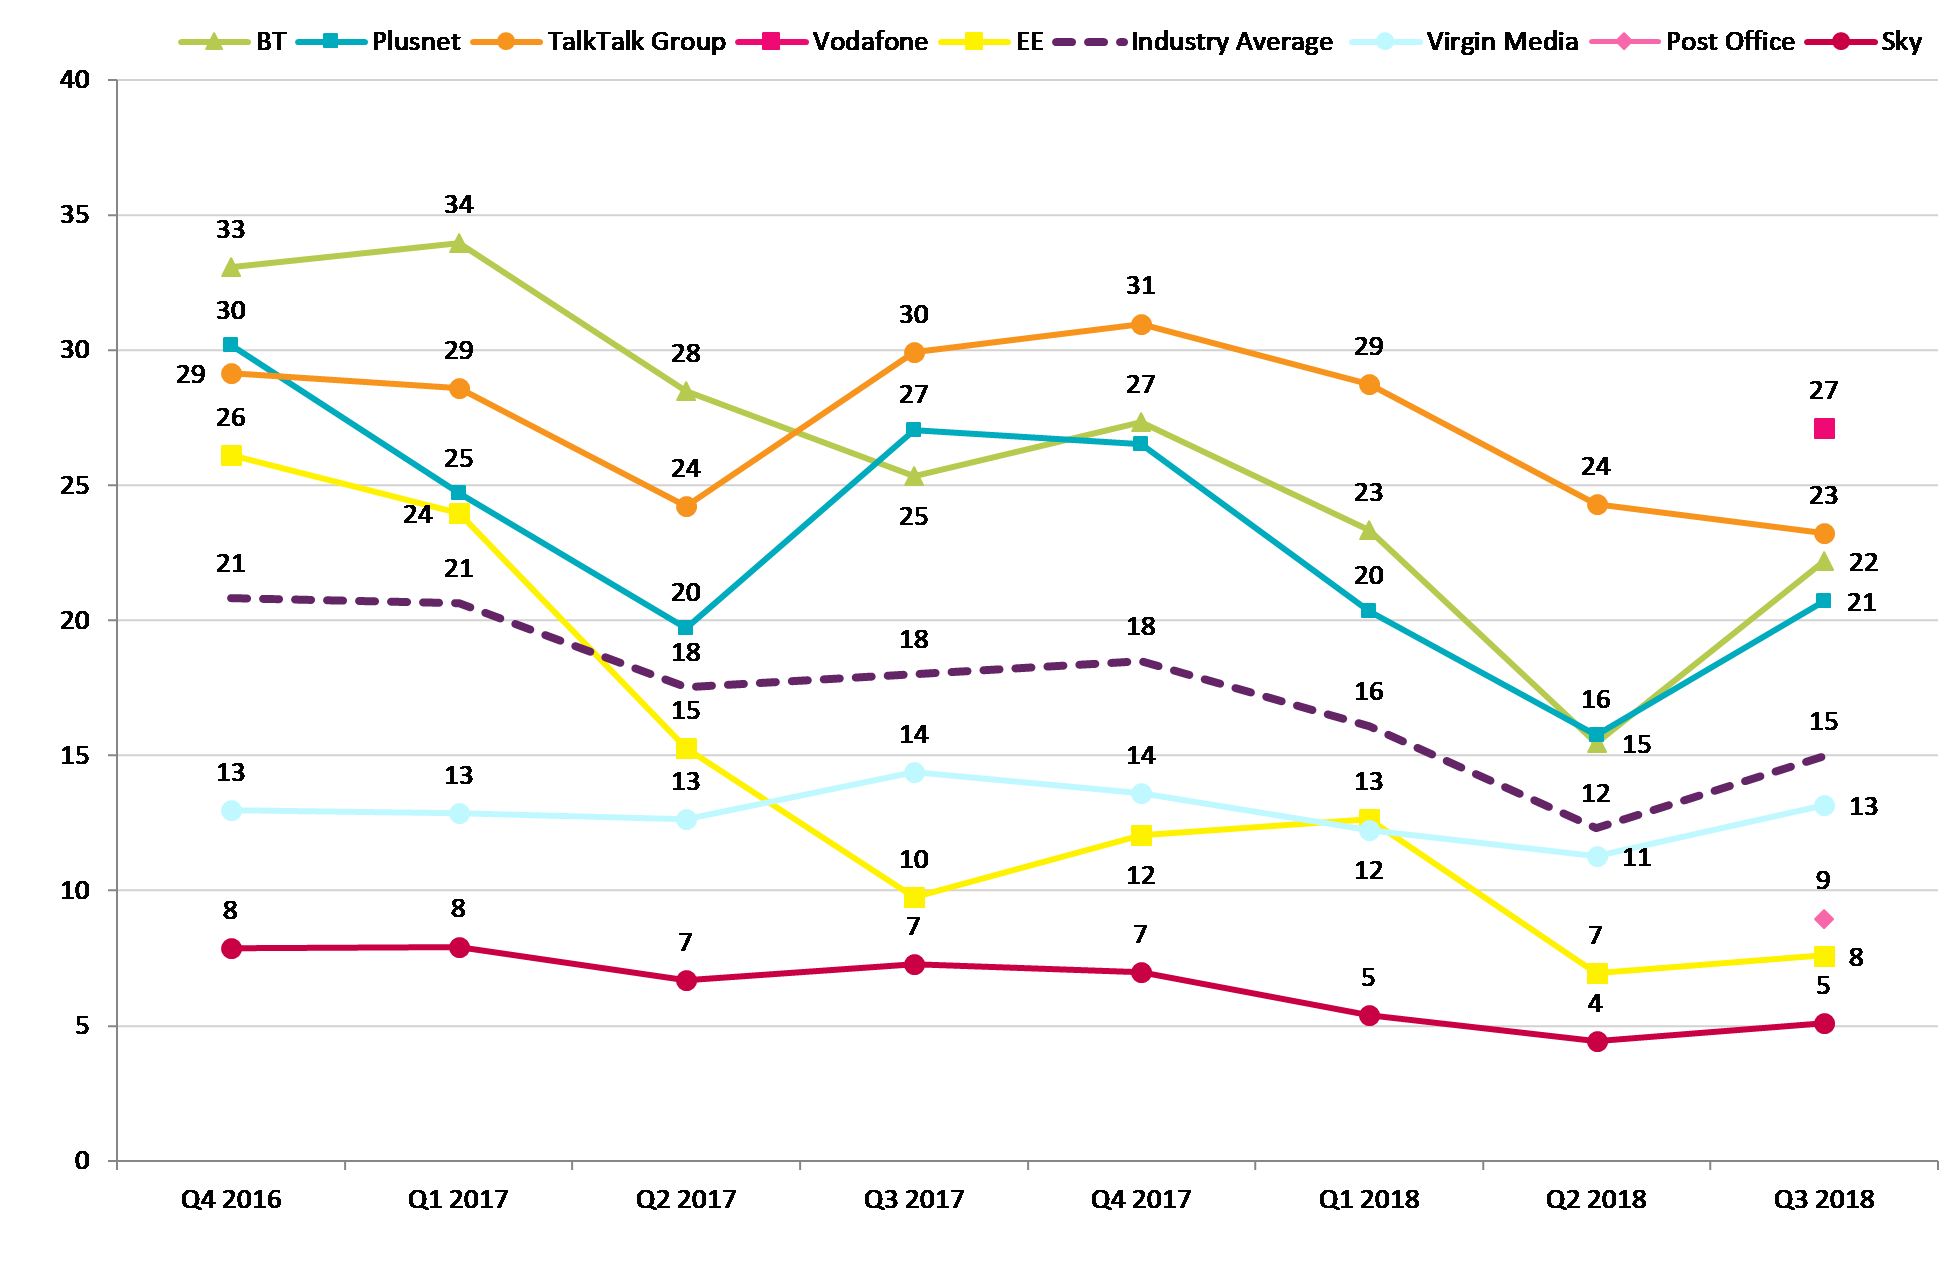 Graph illustrating change in the number of complaints to broadband providers from Q4 2016 to Q3 2018.